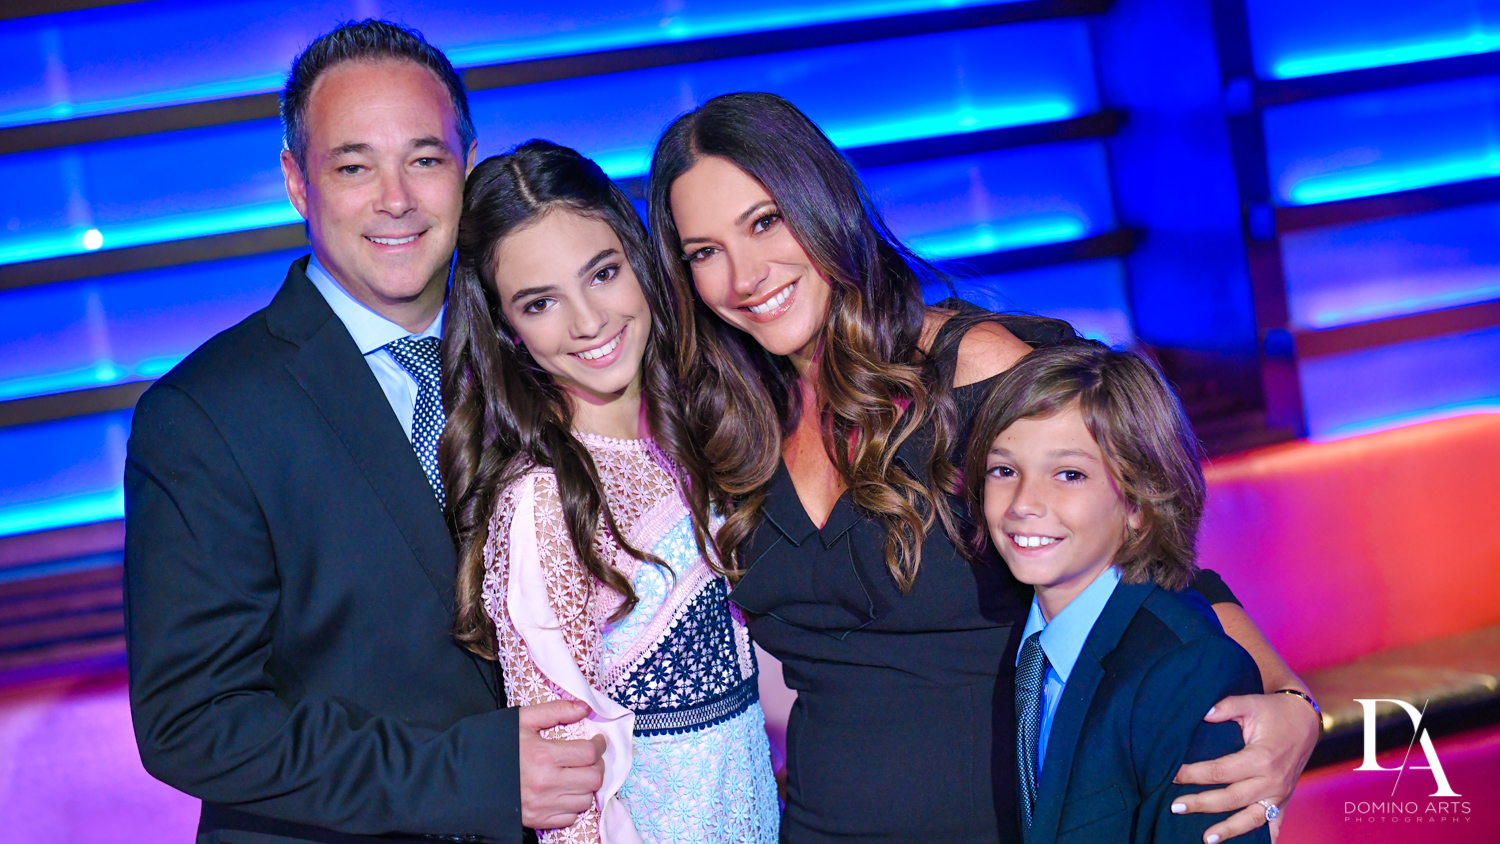 family pictures at Nightclub Bat Mitzvah at LIV in Fontainebleau Miami by Domino Arts Photography